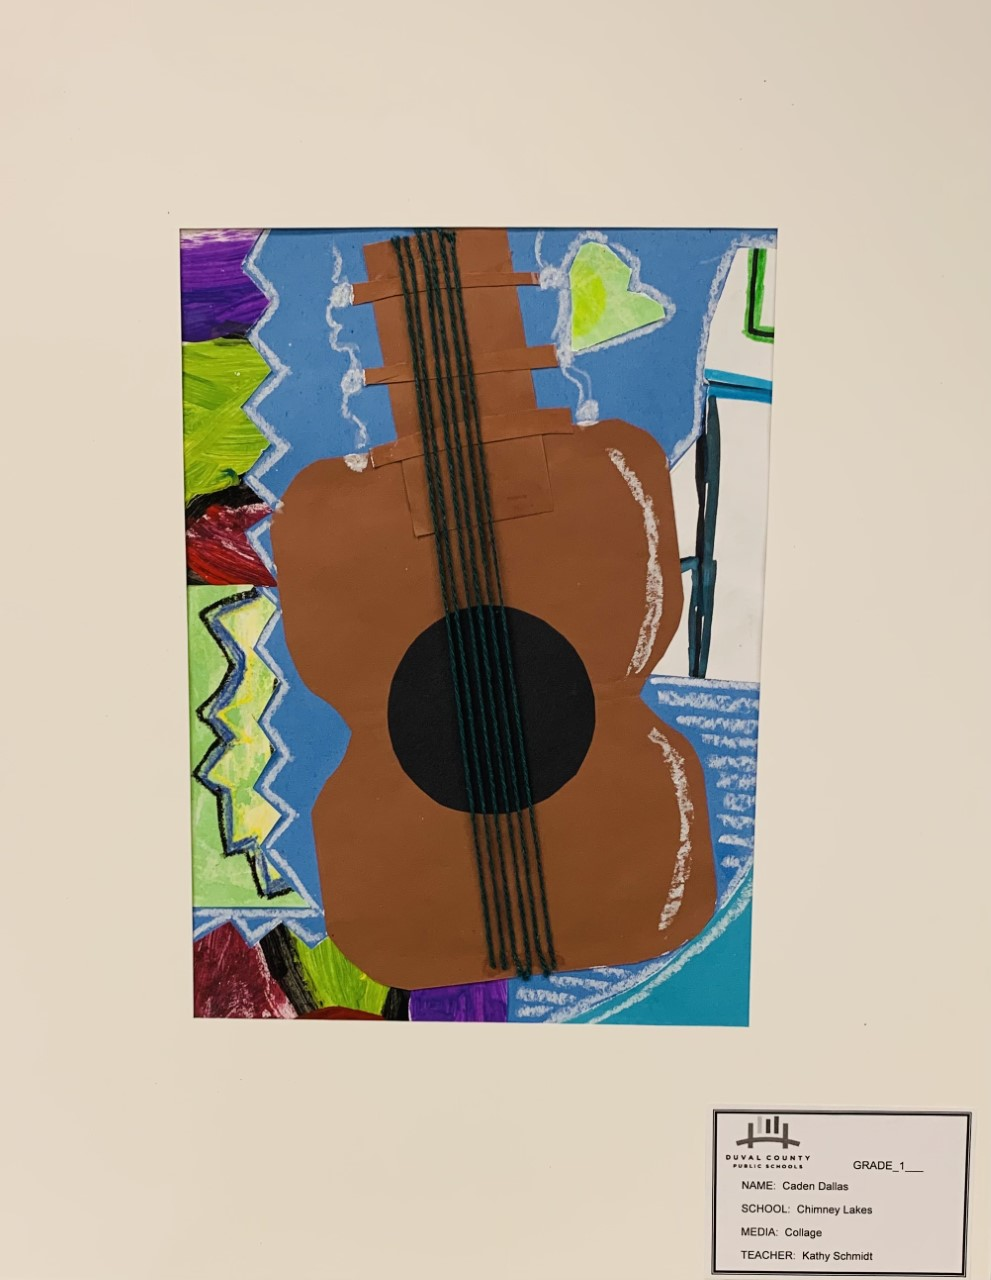 Guitar by Caden Dallas (grade 1) of Chimney Lakes Elementary